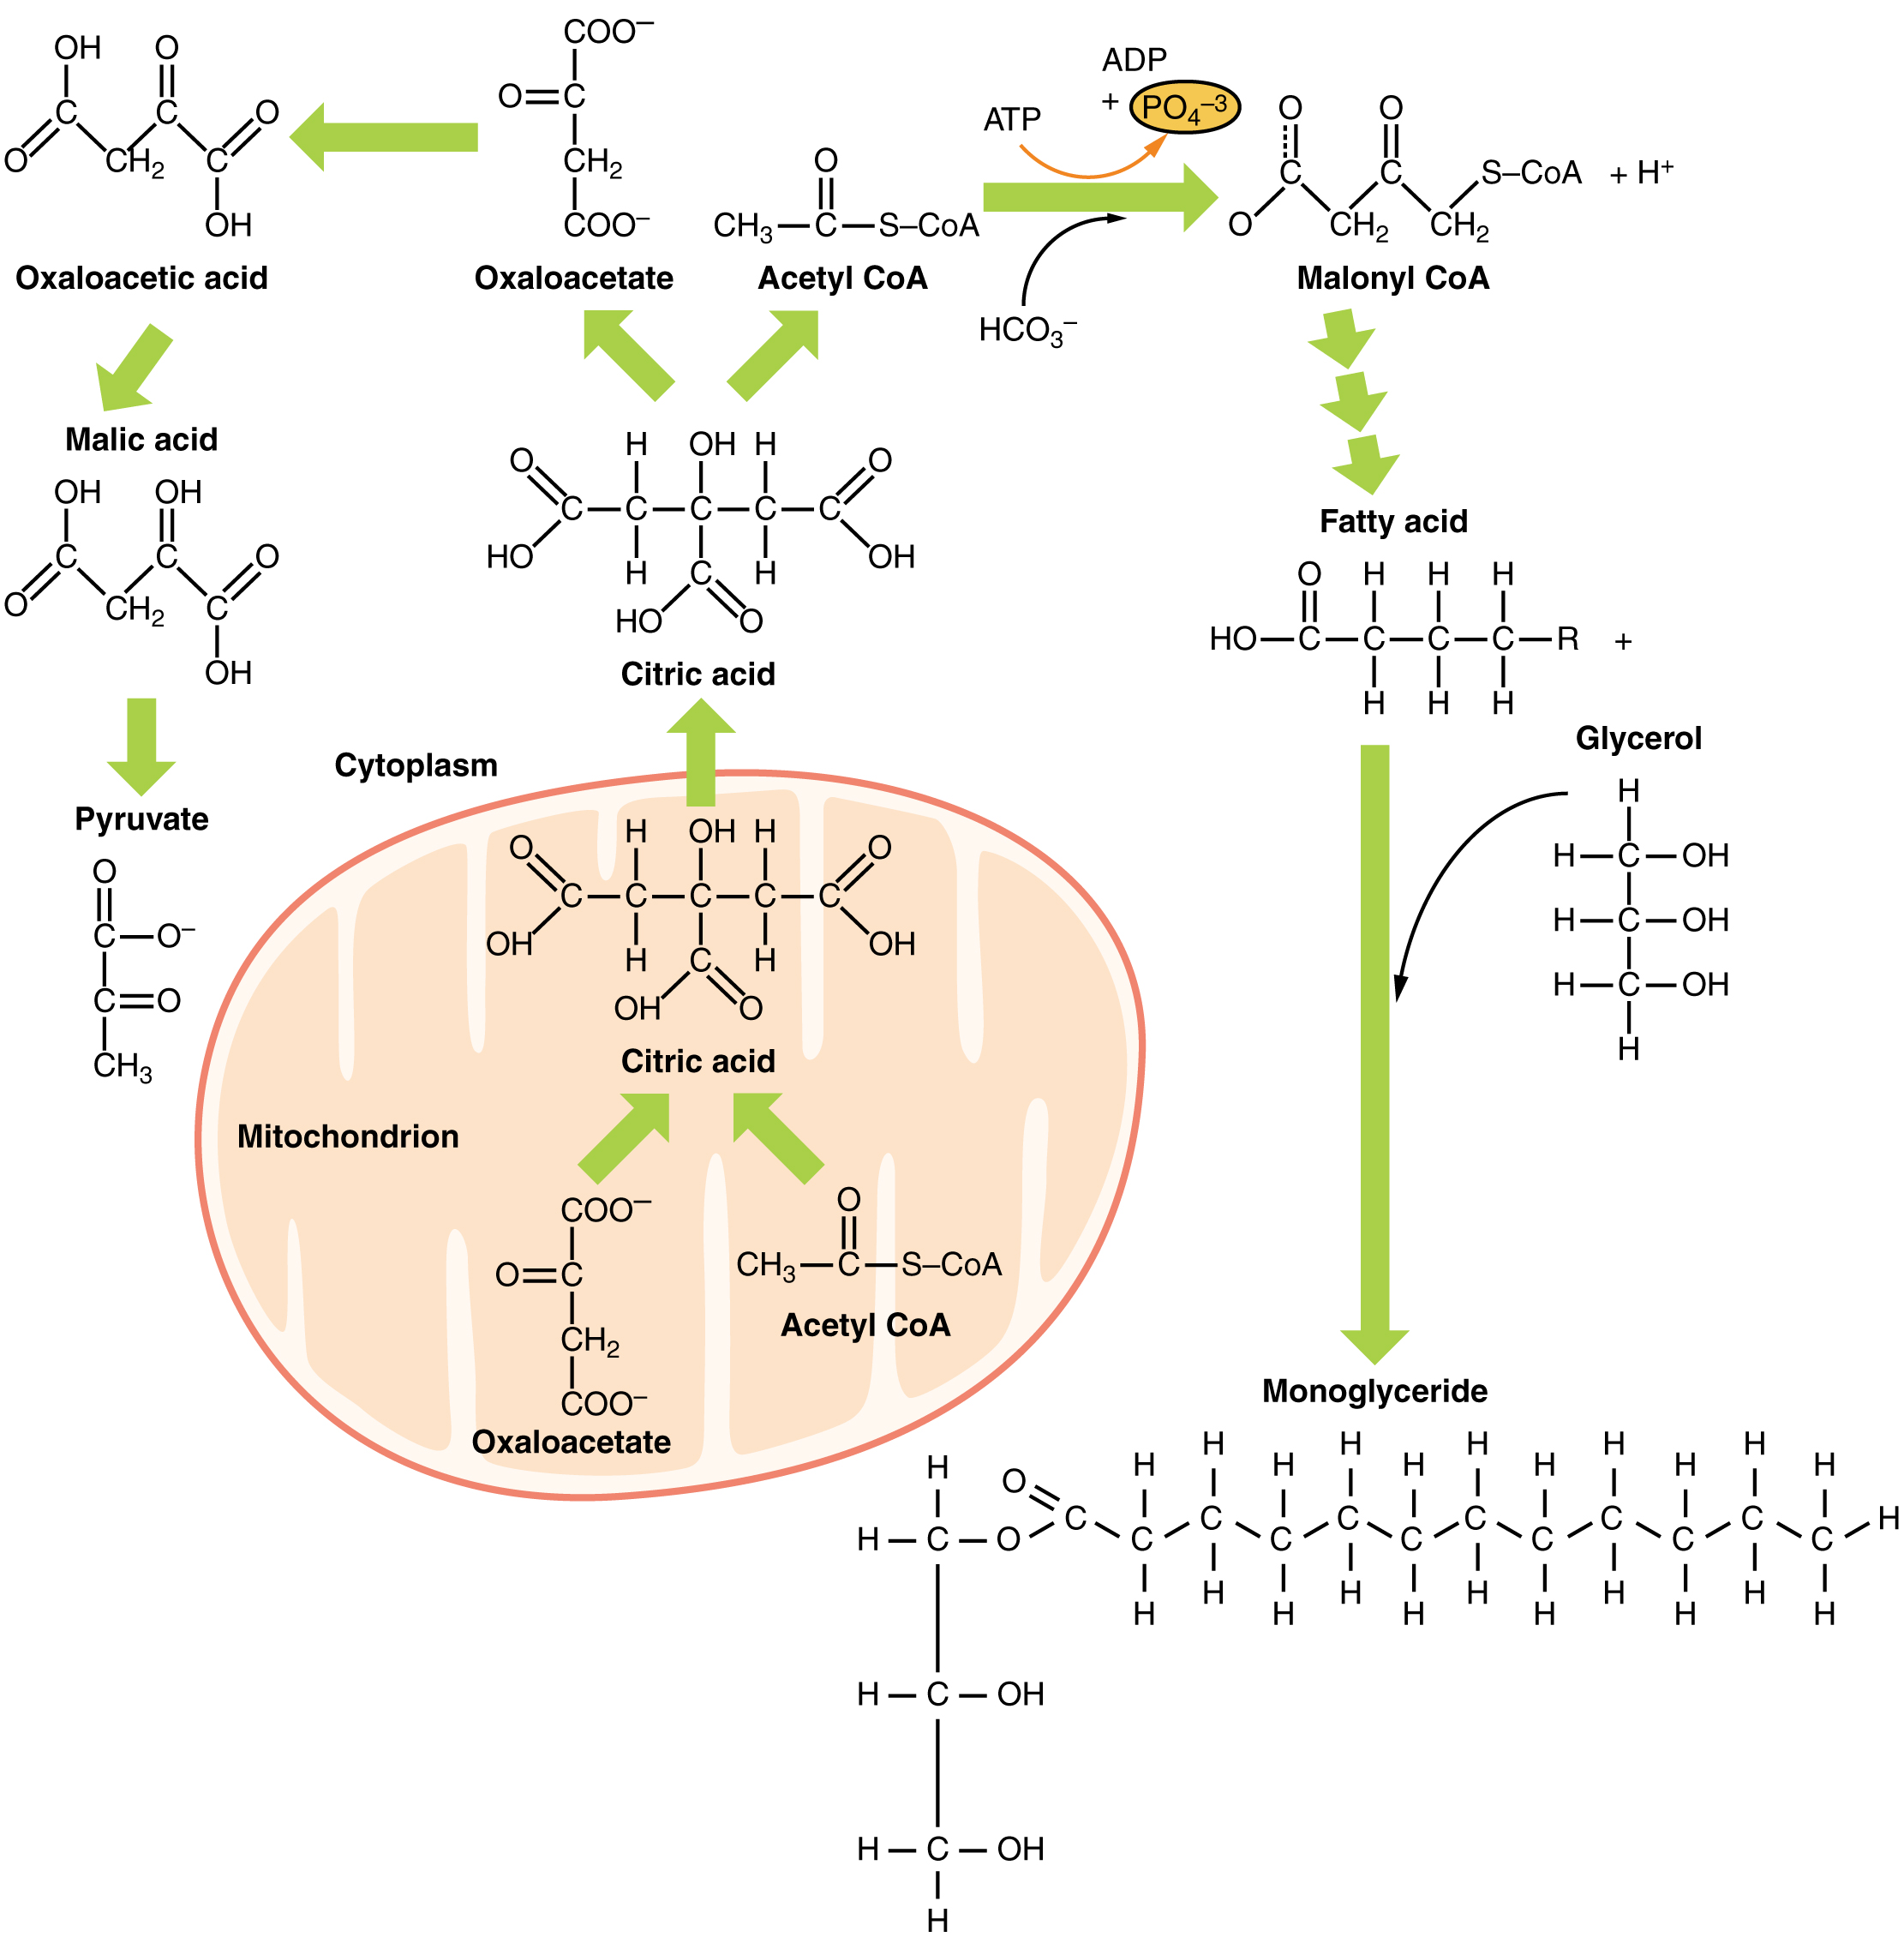 This figure shows the different reactions that take place for lipid metabolism.